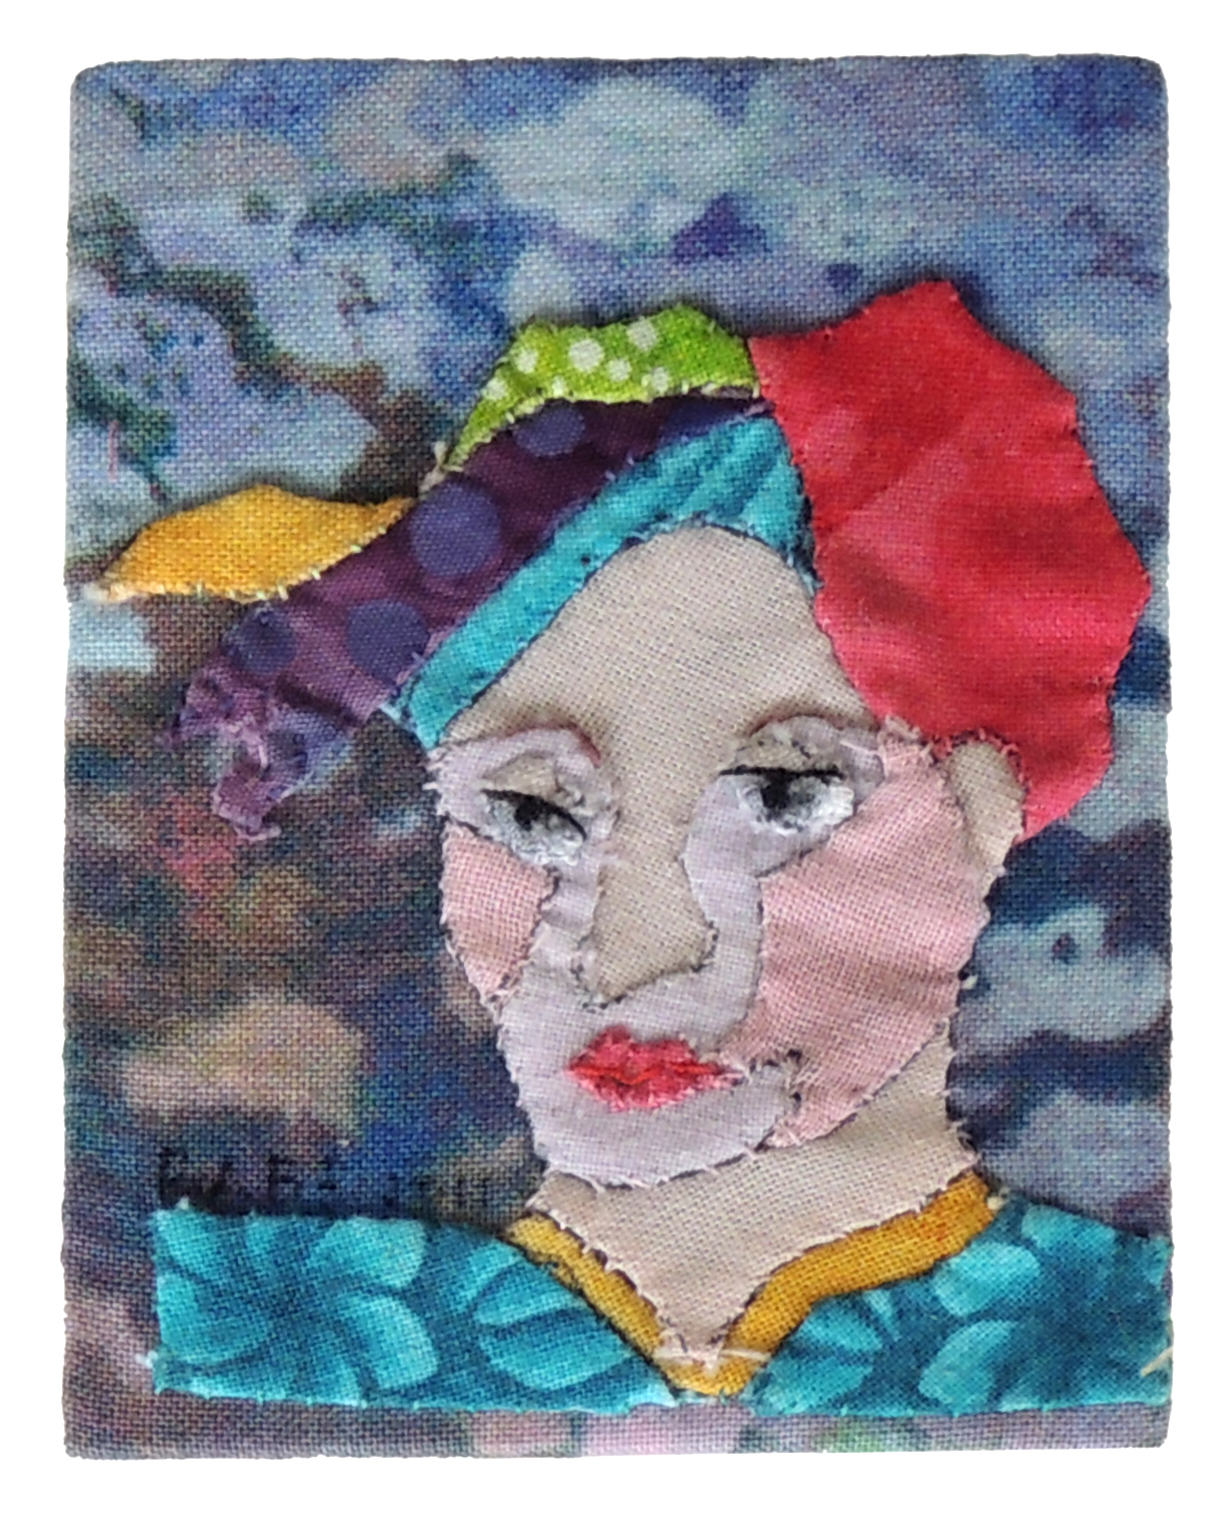 Marianne Rabb Britton | LADY WITH ABSTRACT HAIR | Fabric & Embroidery | 3.5 x 2.5"